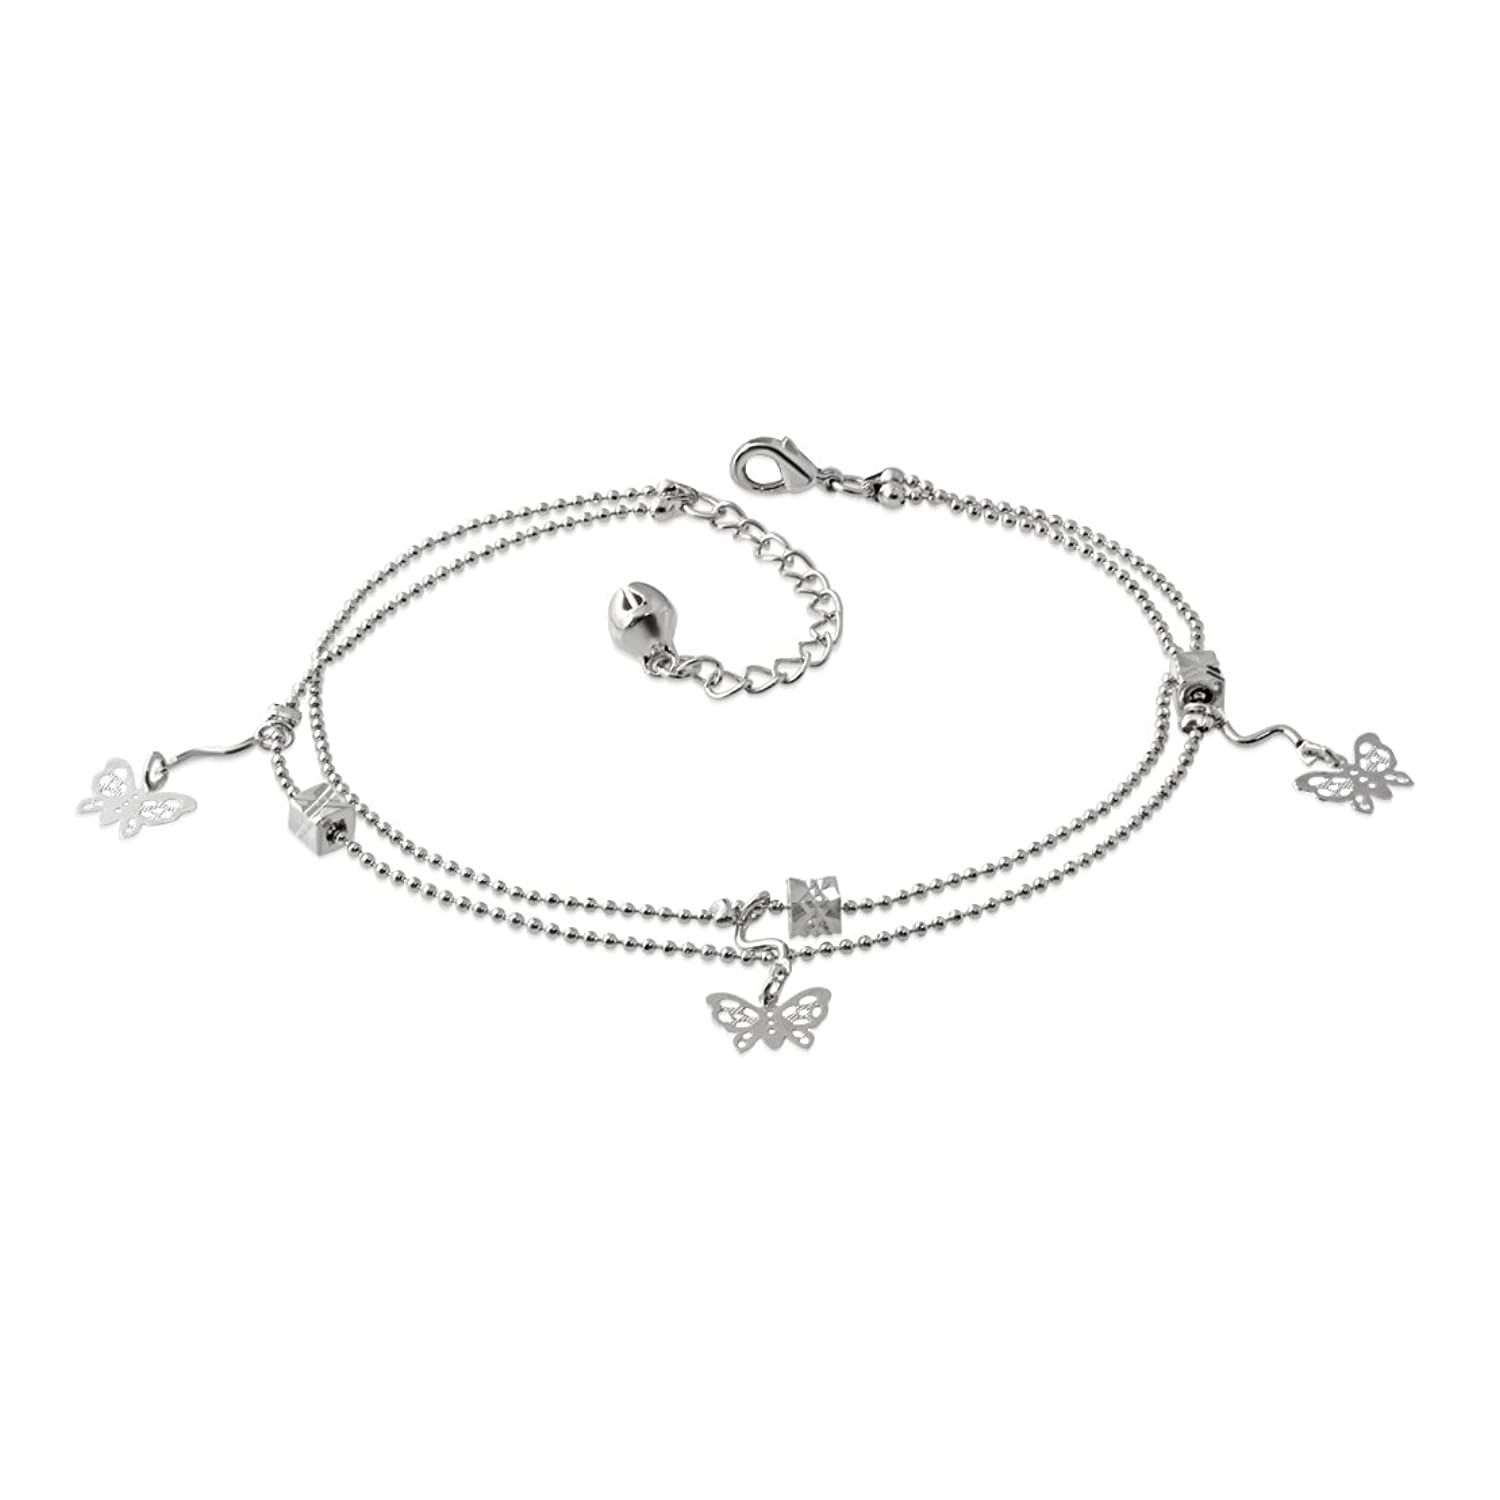 Filigree Butterfly Jingle Bell Charm Double Strand Bracelet/ Anklet with Extender Chain